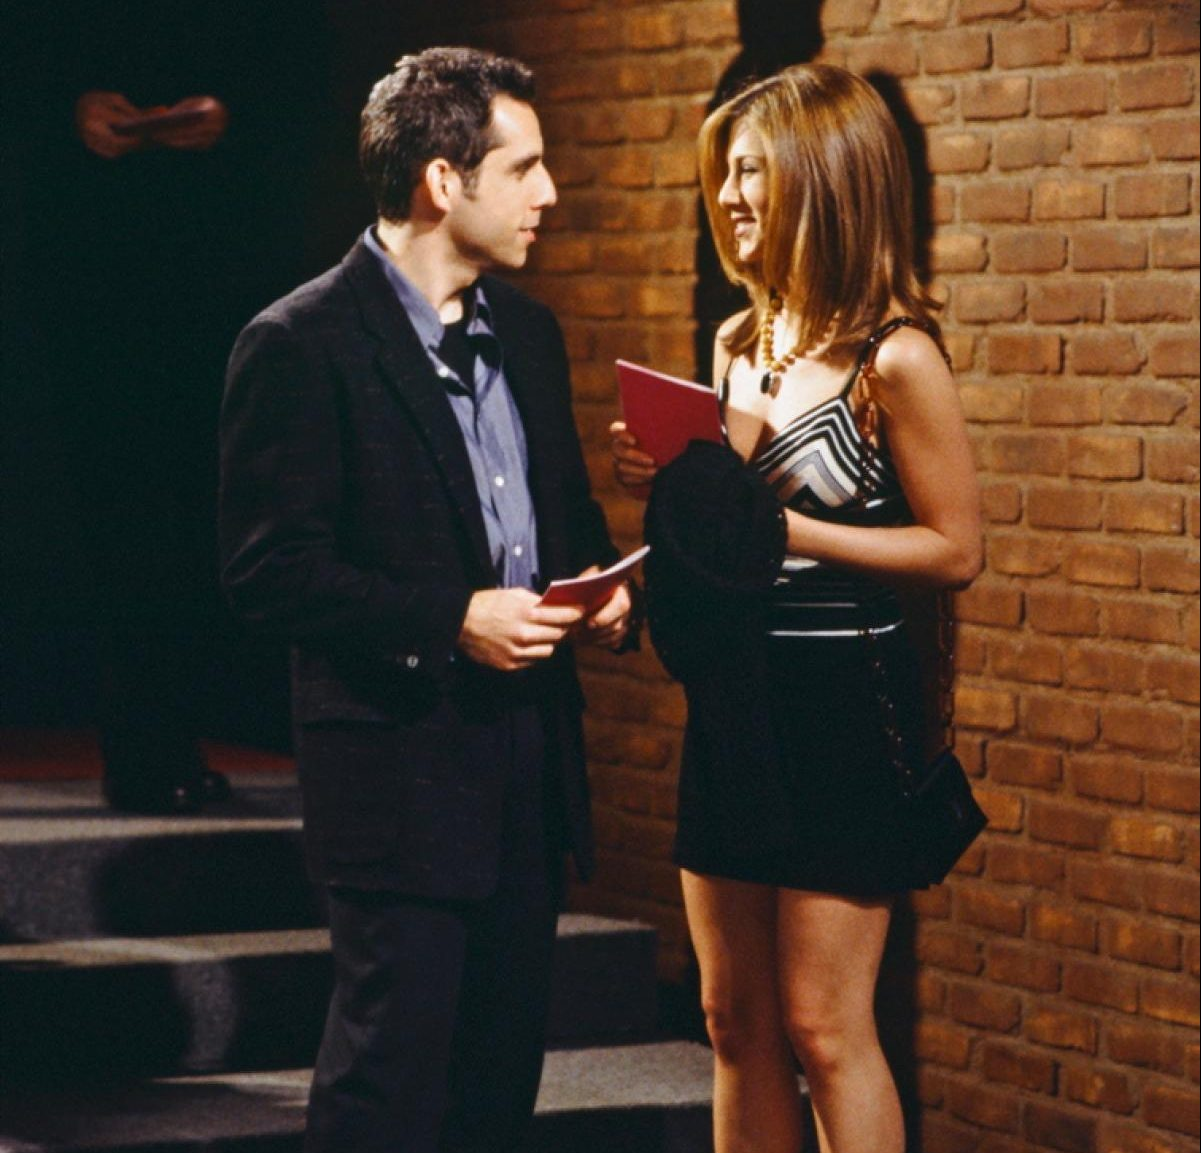 14 9 e1603448365265 20 Of The Best Celebrity Cameo Appearances On Friends